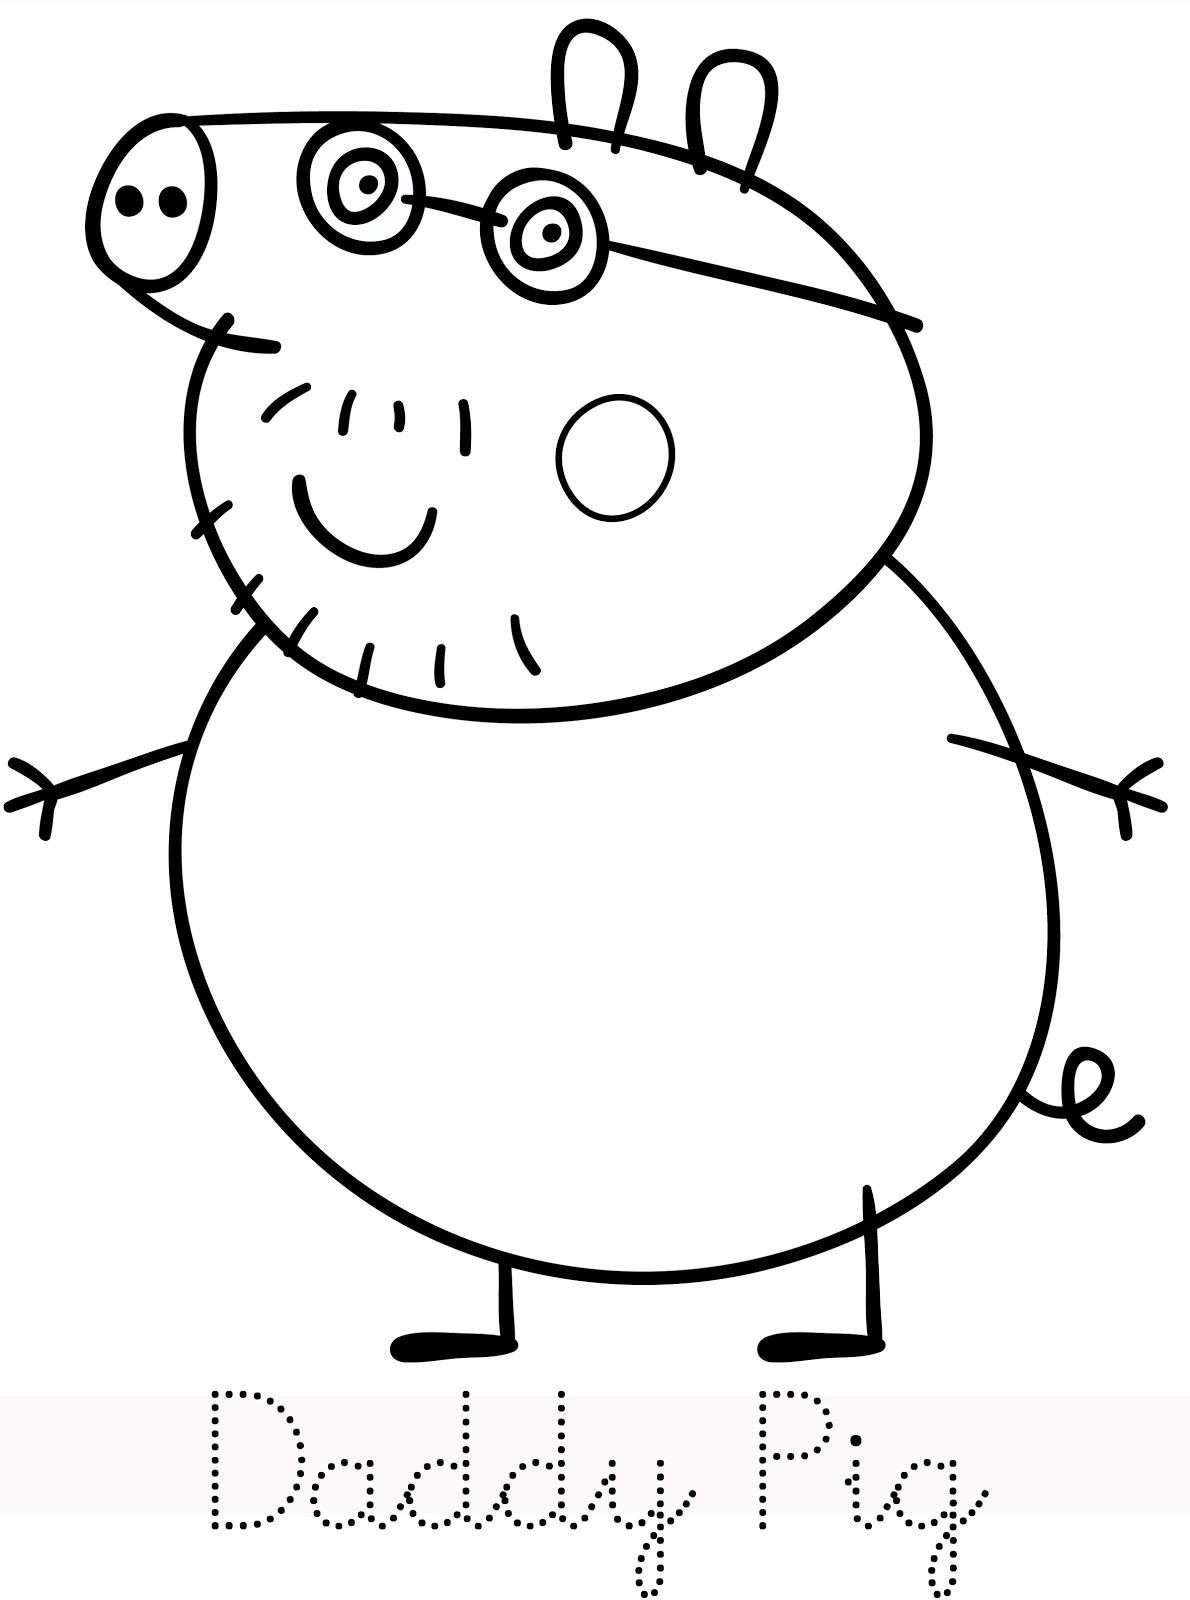 peppa pig coloring pages photo - 28 | baby | Pinterest | Peppa pig ...